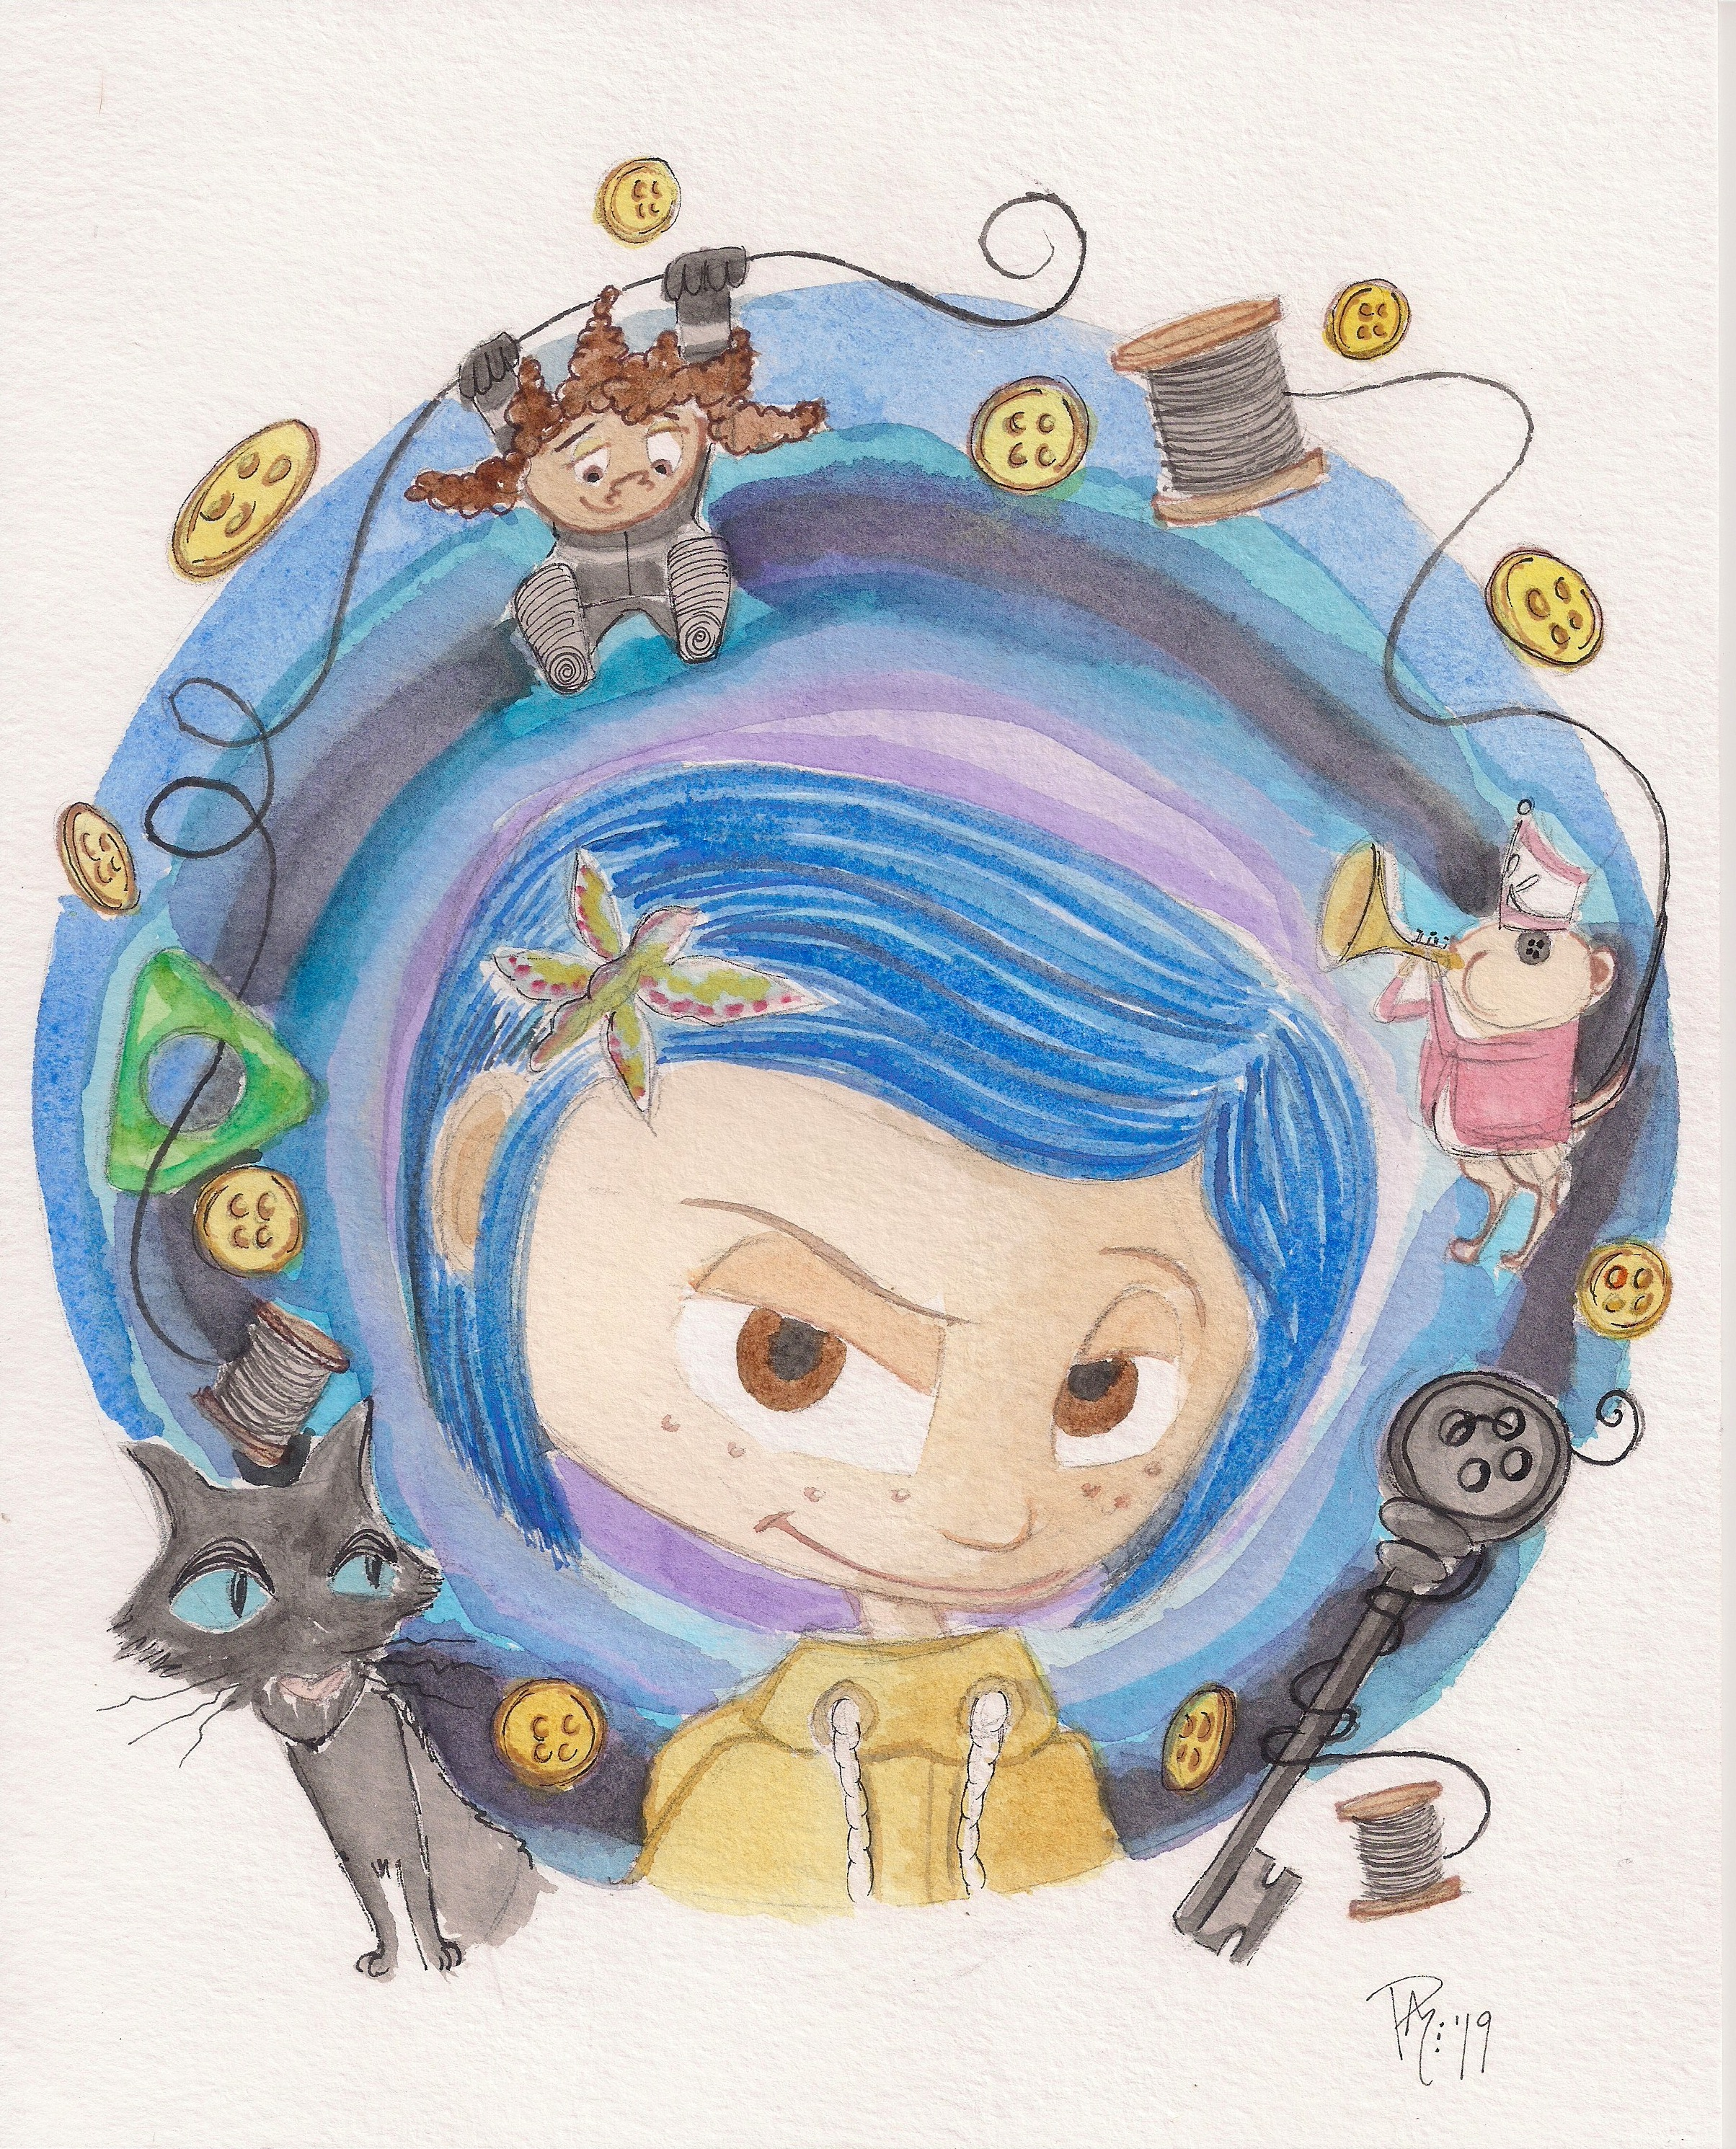 coraline_submission